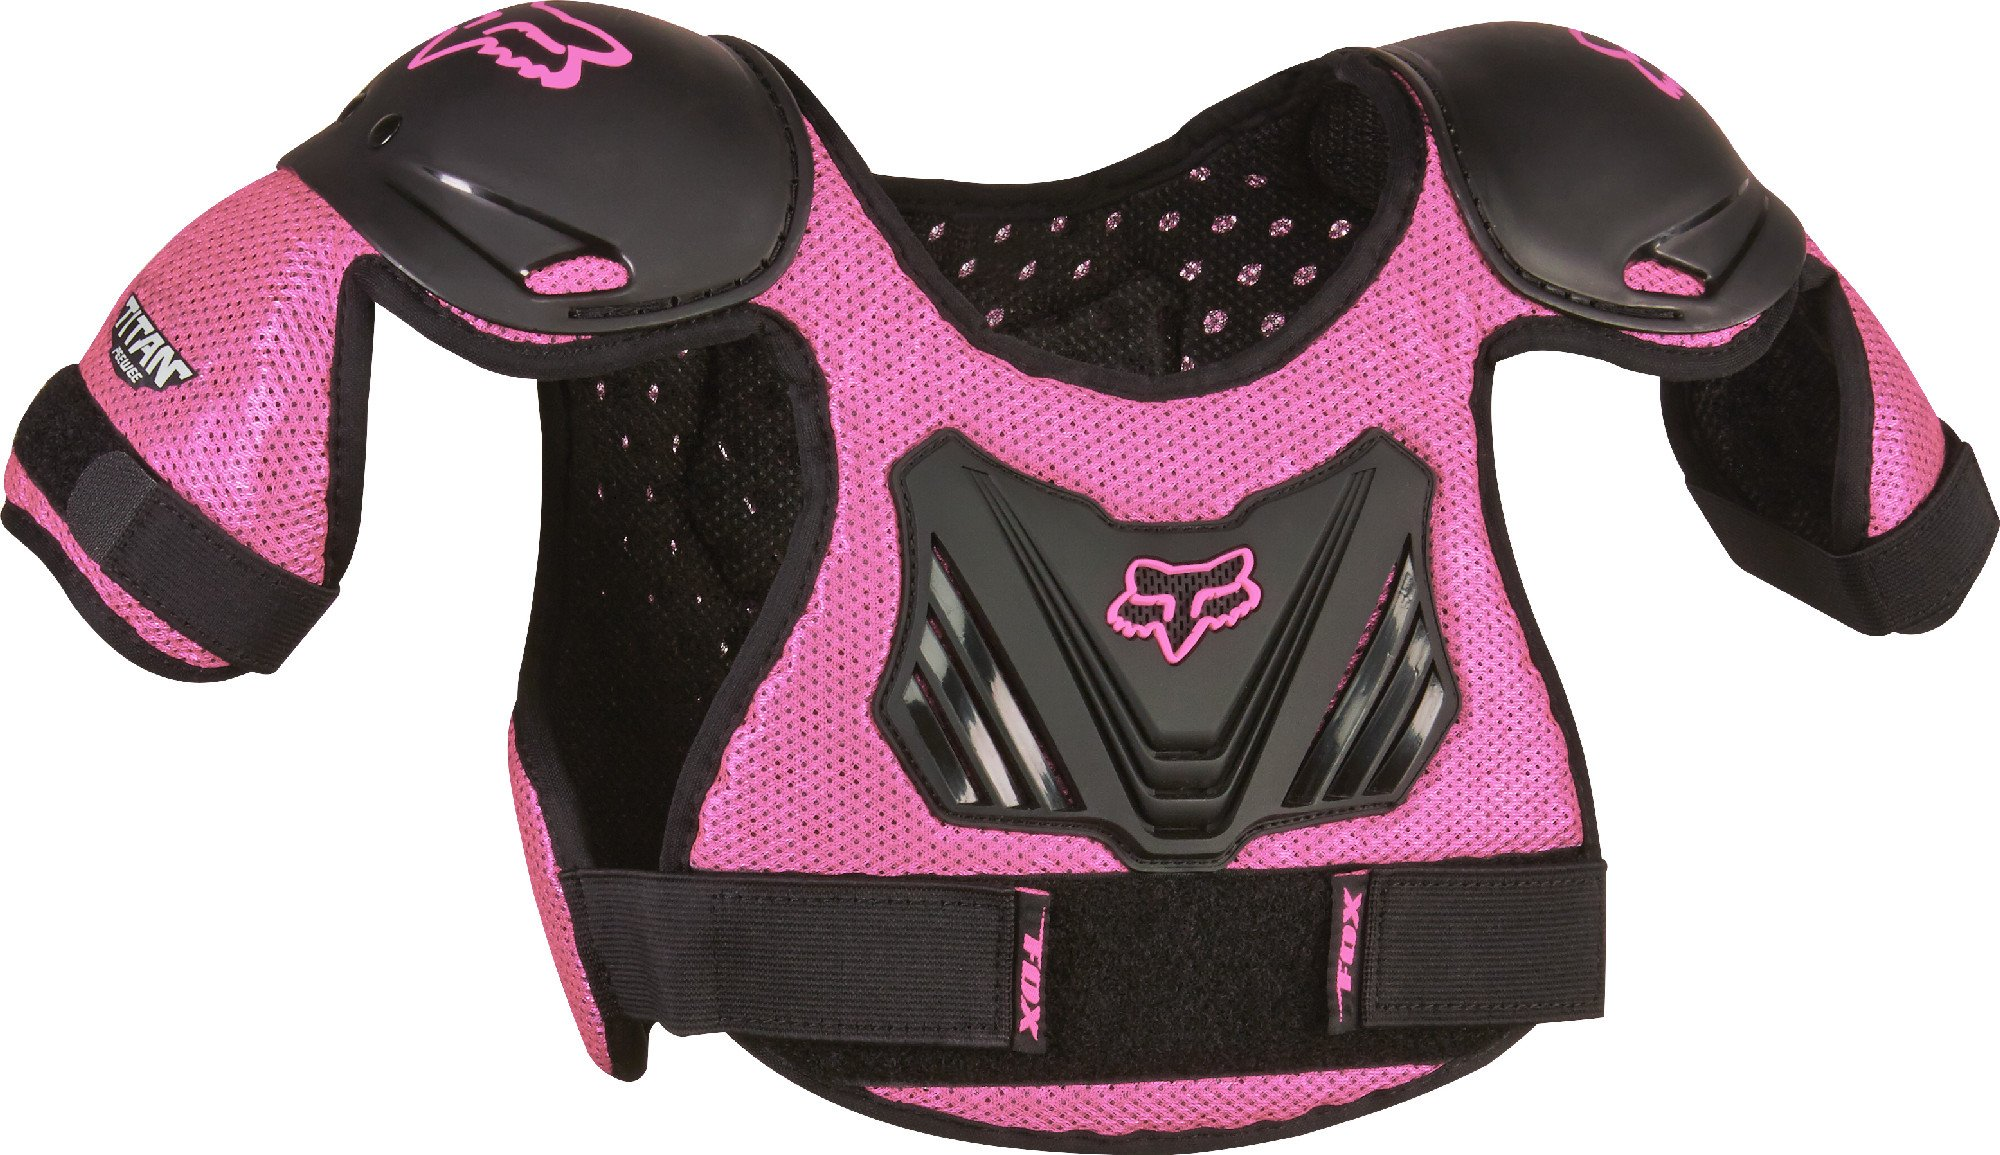 Fox Racing 2019 PW-1 Roost Deflector (BLACK/PINK)